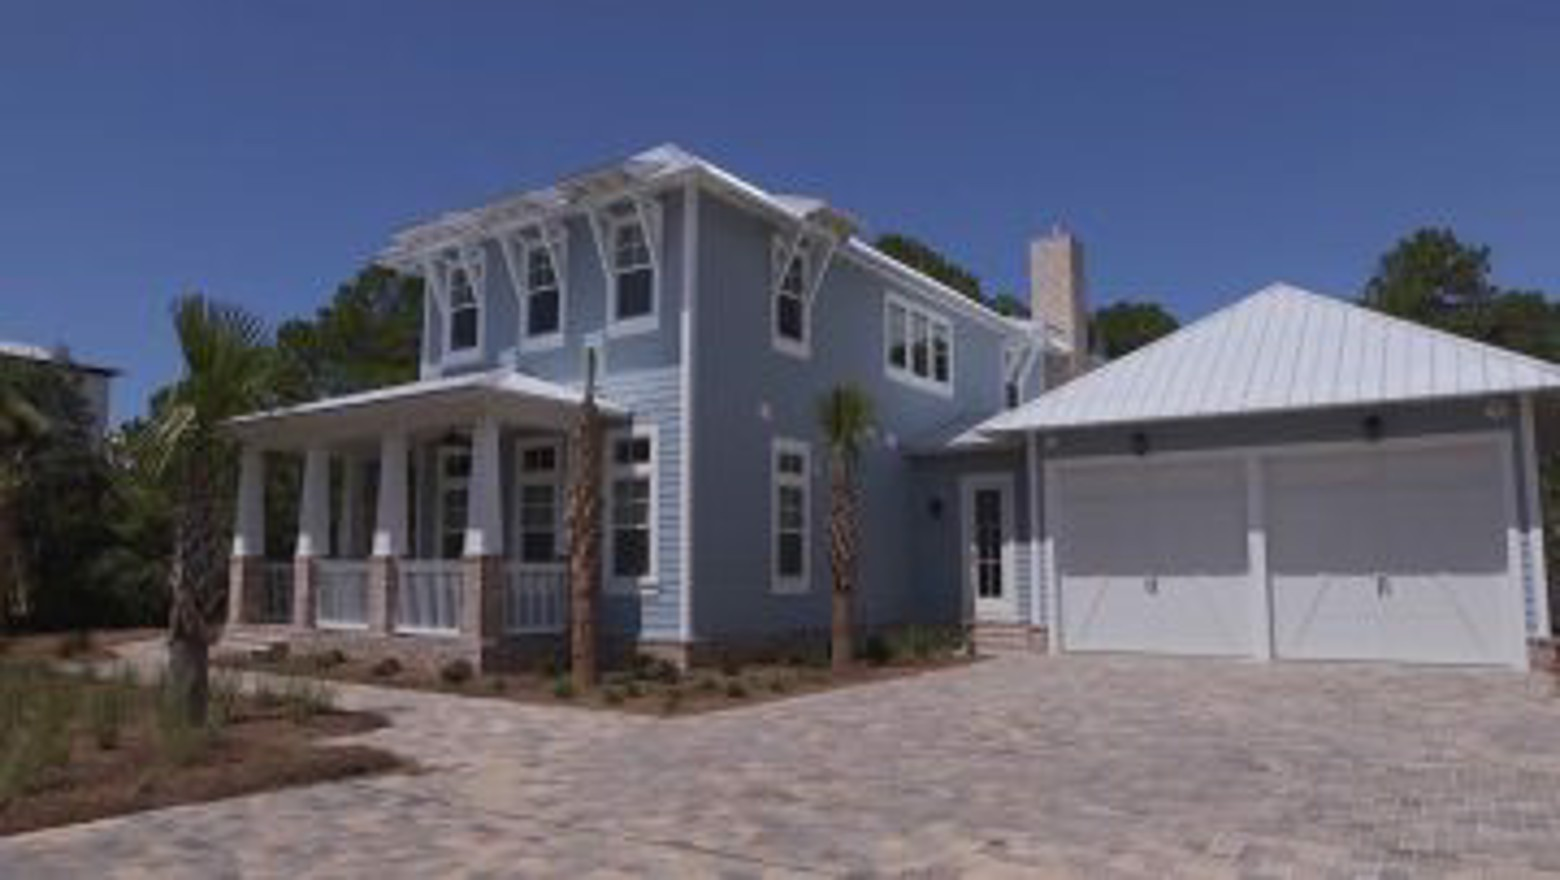 Southern-Sands-Seagrove-Beach-Vacation-Home.00_00_04_18.Still001-e1478705705927.jpg image